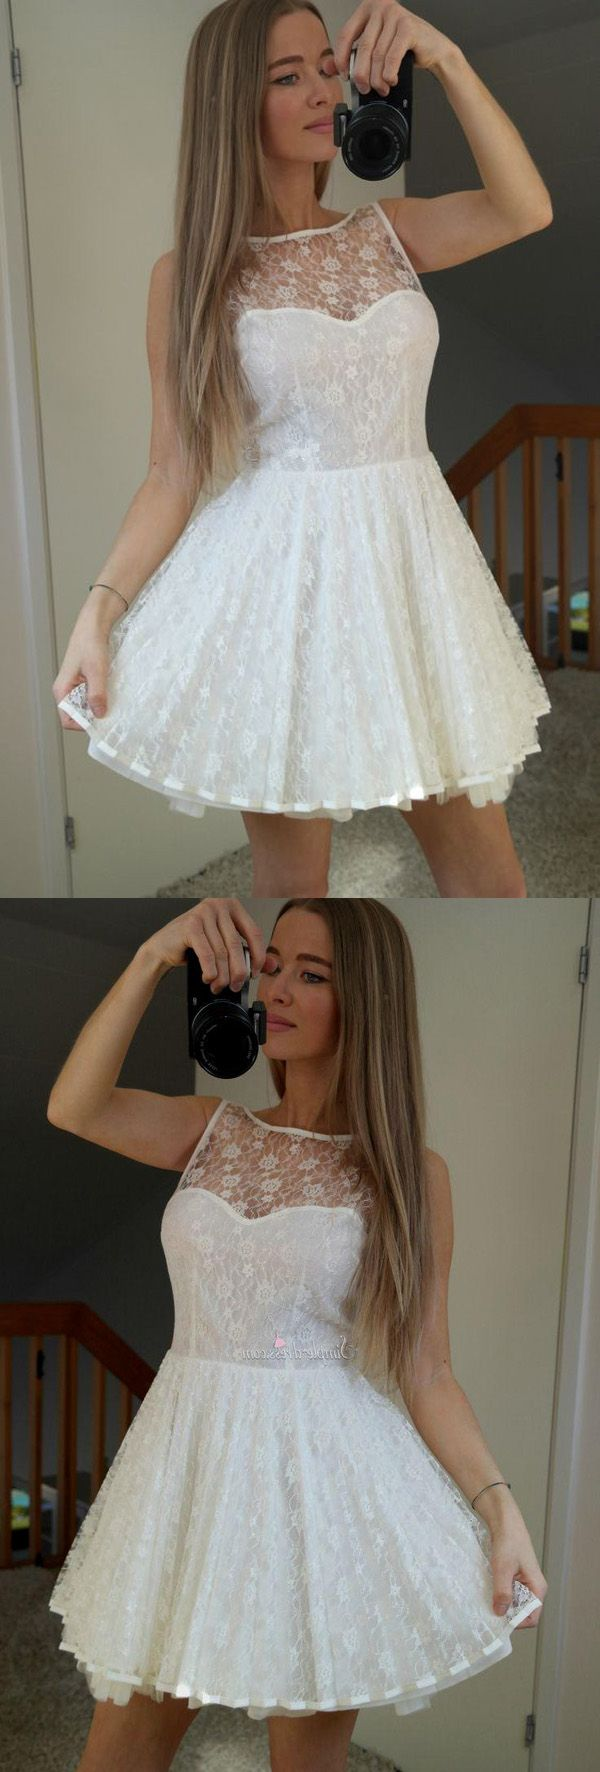 White Sheer Homecoming Dresses,Sleeveless Lace Up Appliques Short Prom Dress HCD120 Short Prom Dresses, Homecoming Dresses, Prom Gowns, Party Dresses, Graduation Dresses, Short Prom Dresses, Gowns Prom, Cheap Prom Gowns on Line